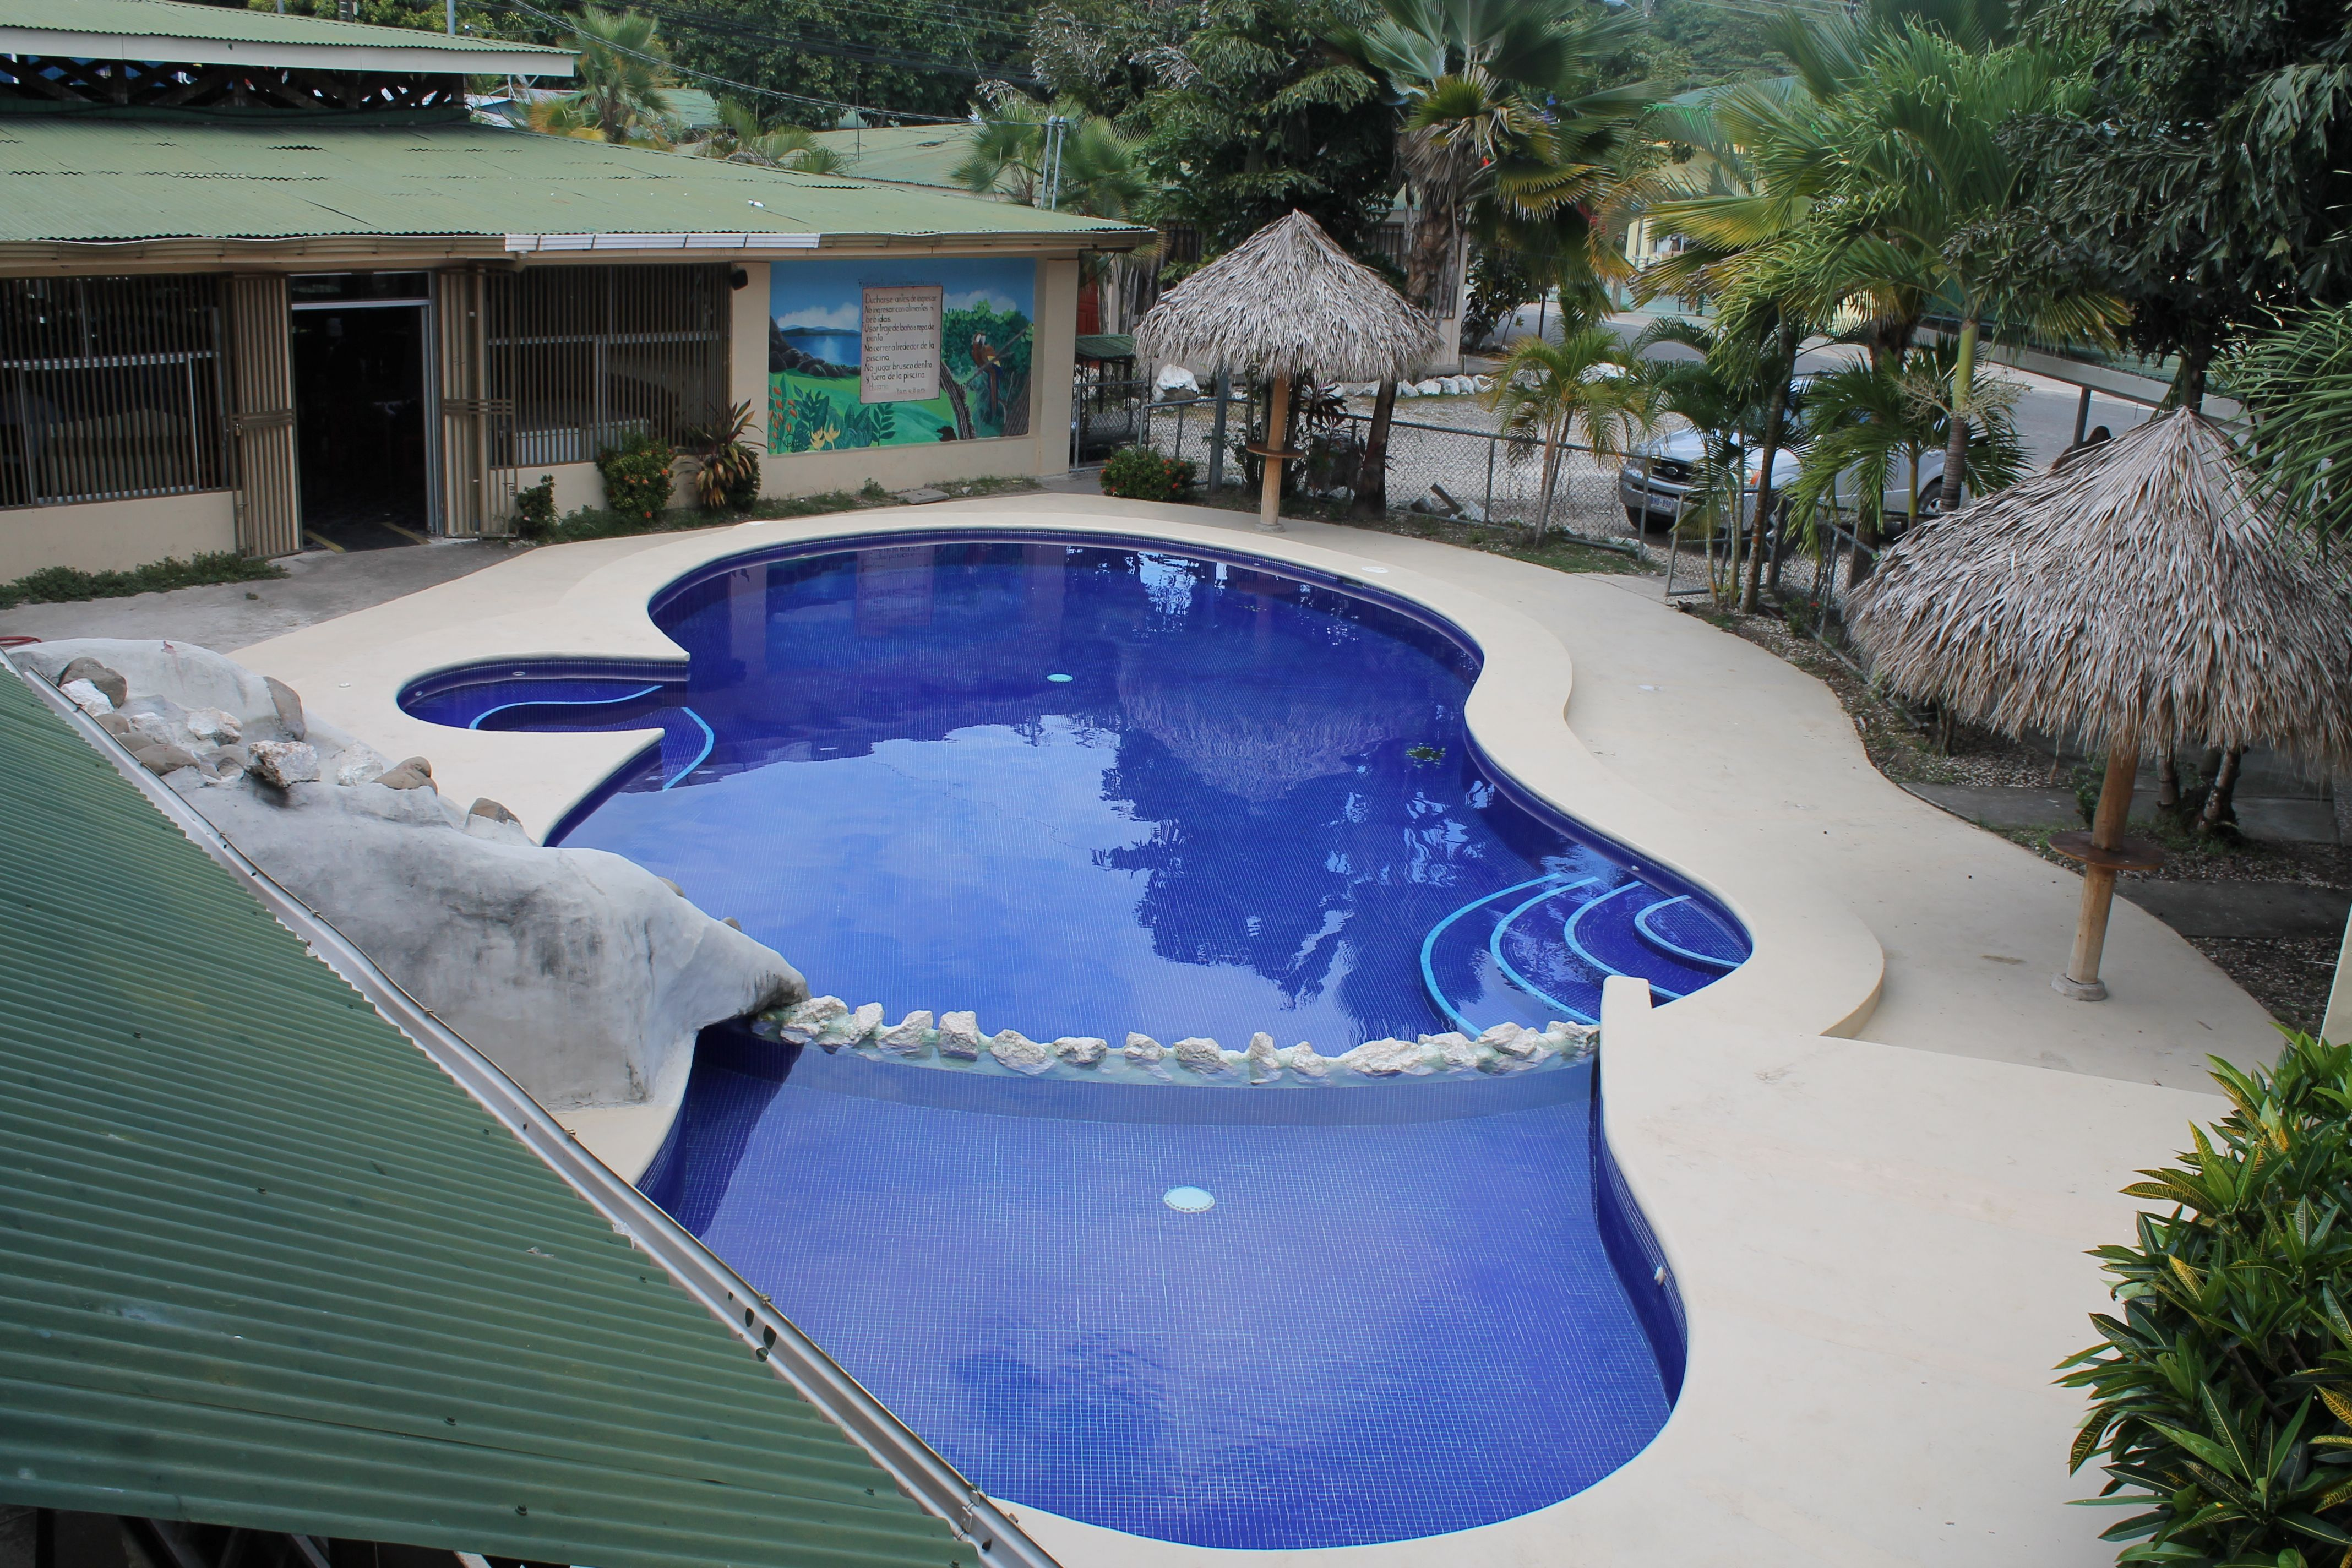 Hotel Ginana In Paquera, Costa Rica For Sale $1,150,000Us Http